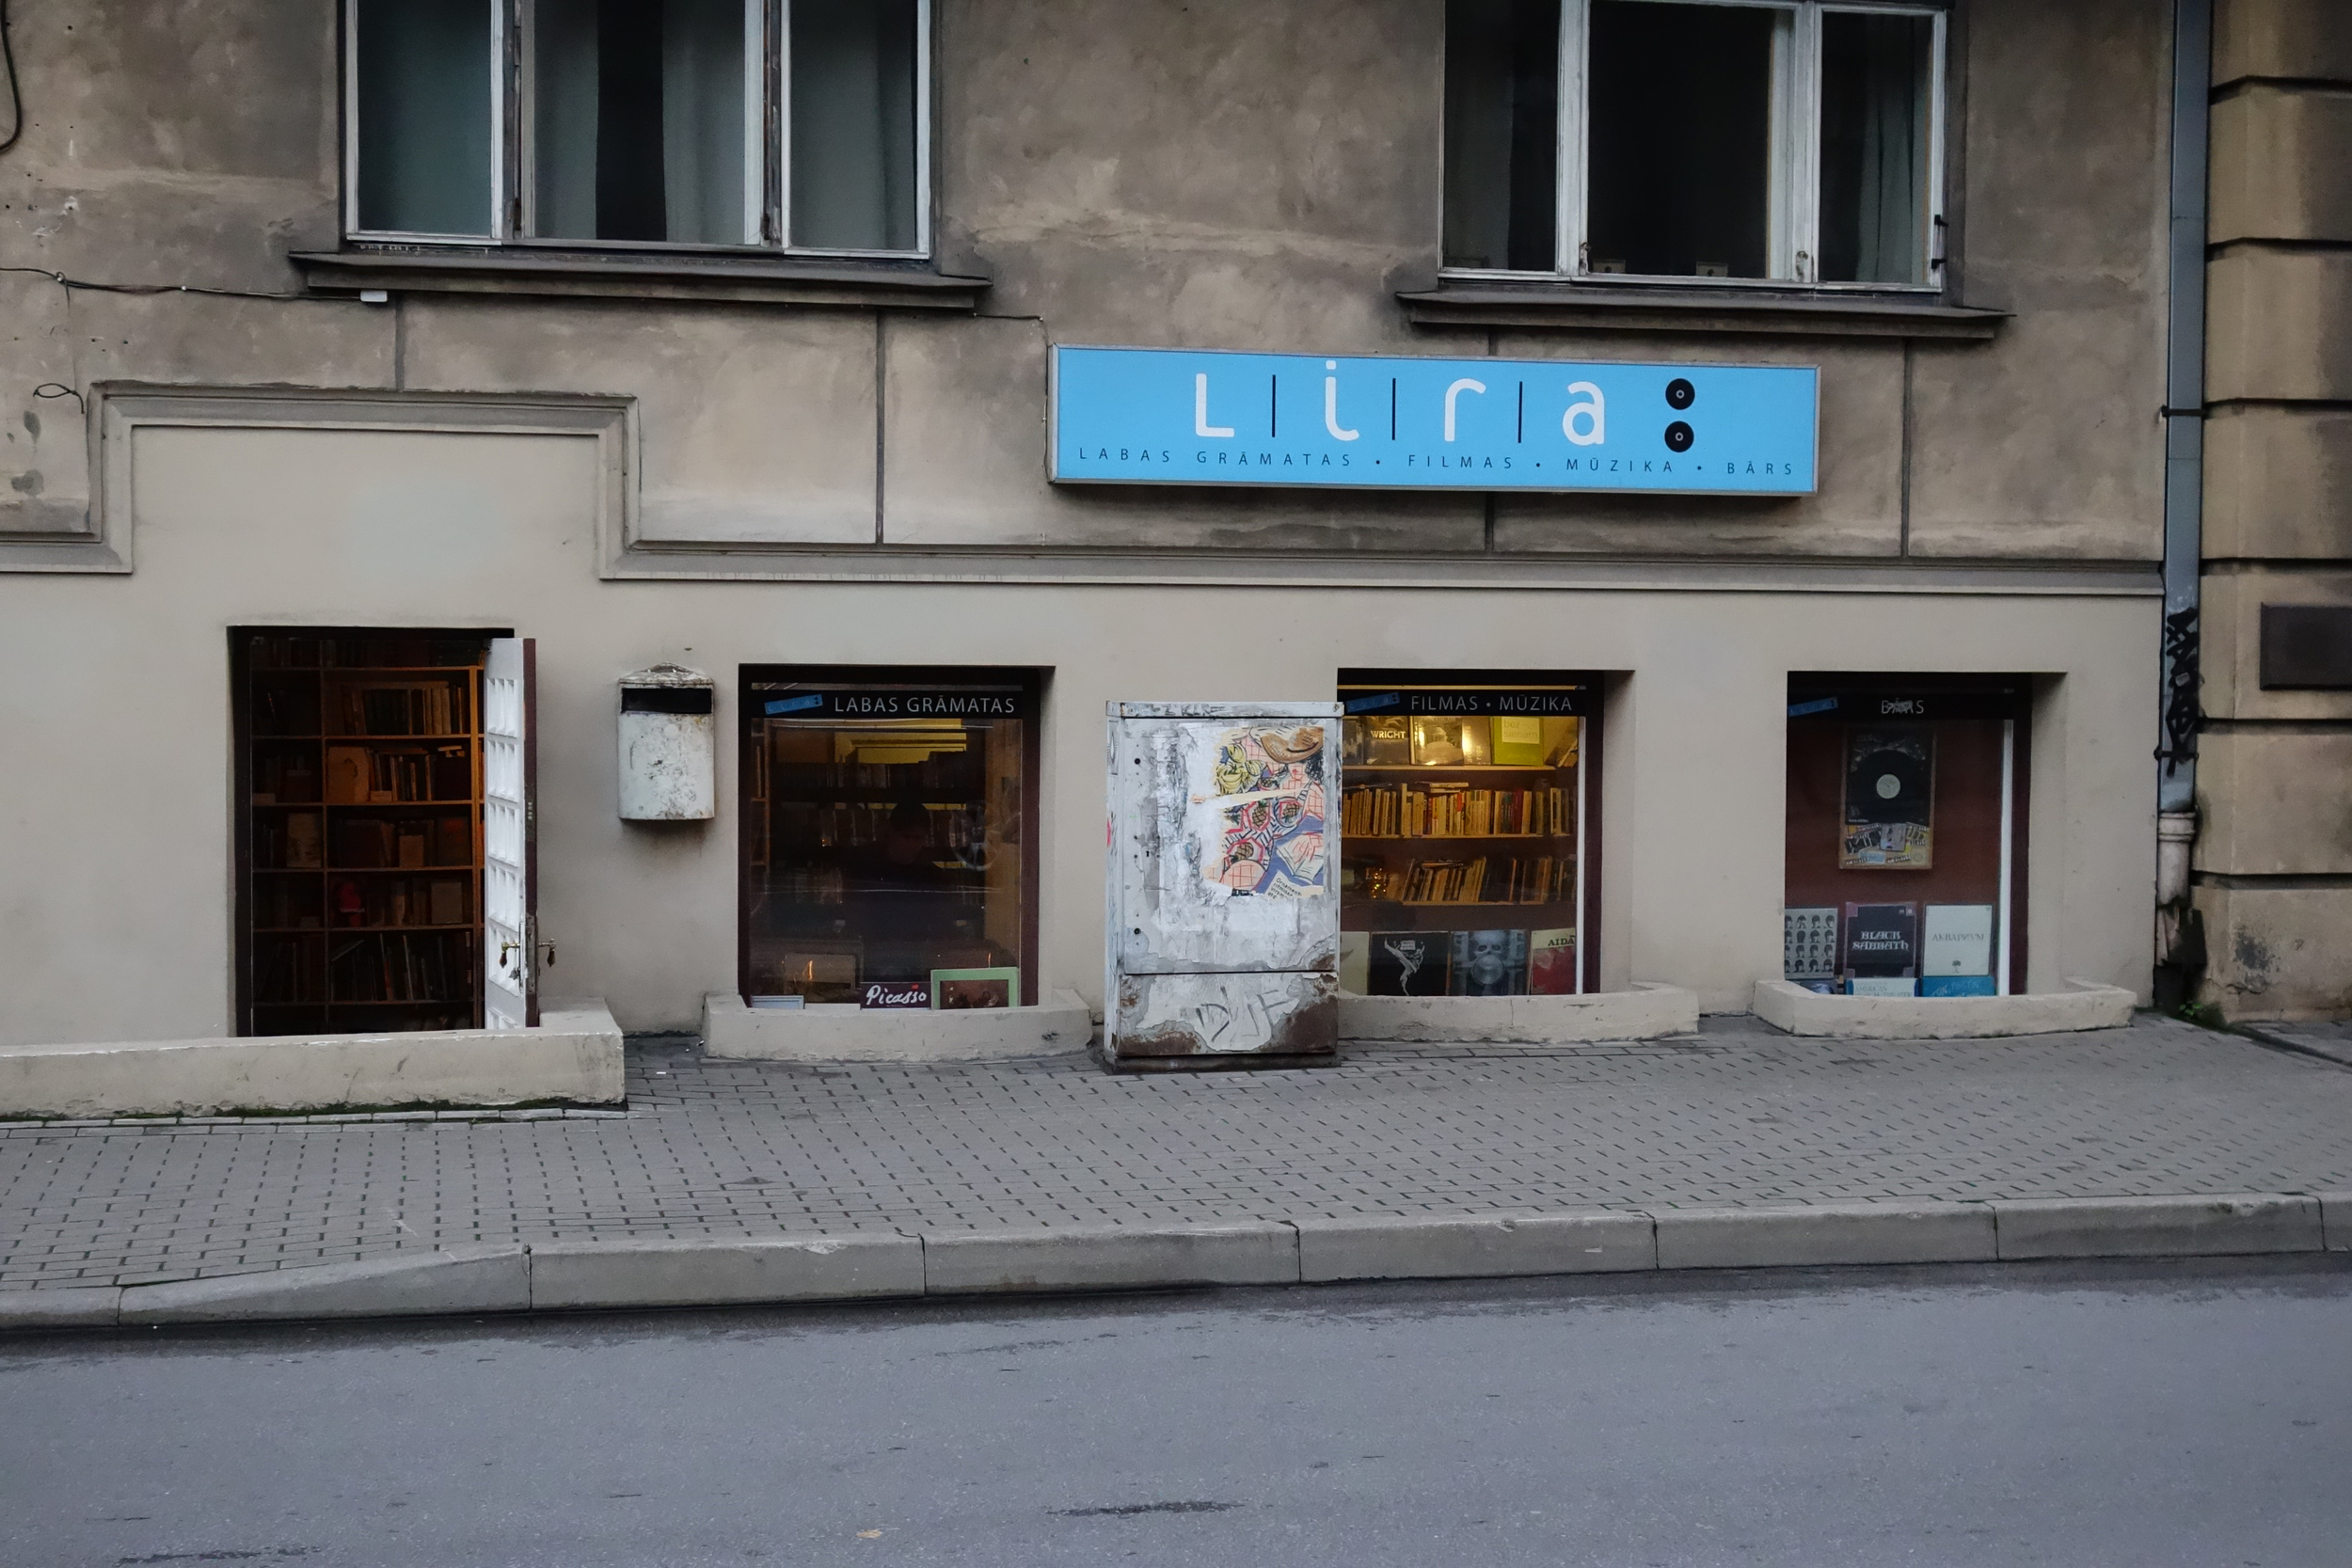 Fantastic selection of Eastern Bloc vinyl here @ LIRA - the only recordshop I hit during the first trip. Polskie Nagrania, Melodia, Electrecord, Hungaroton for days.